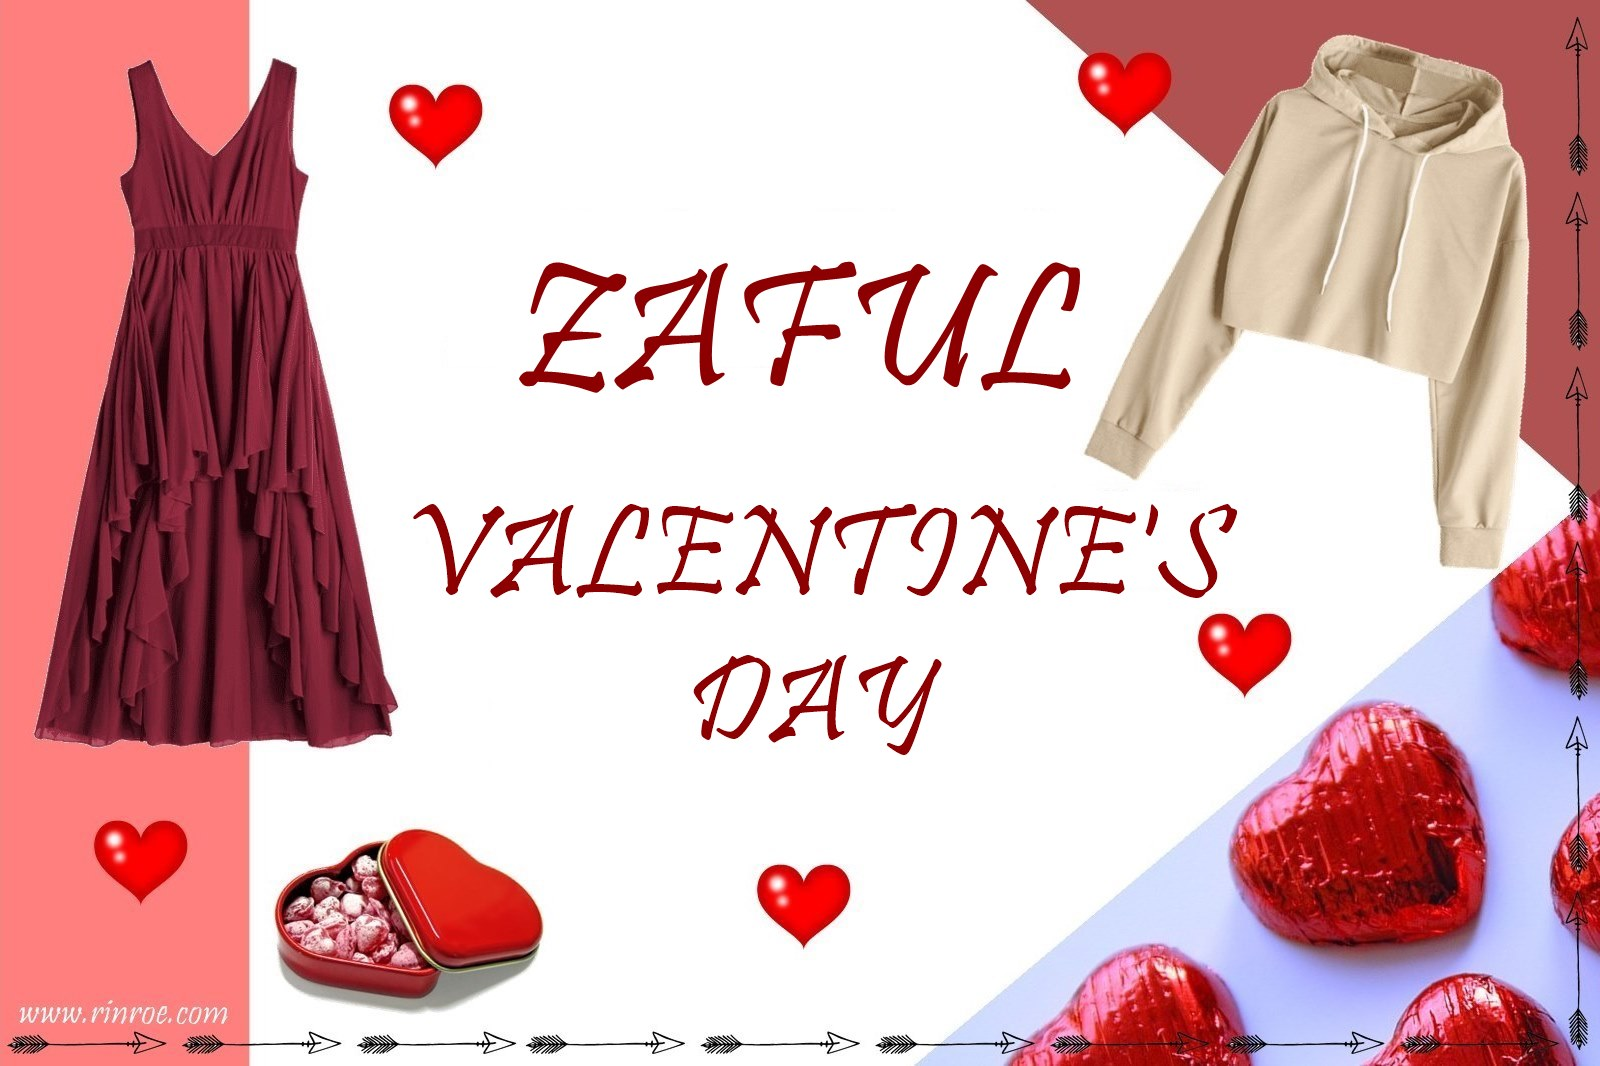 Zaful valentines day 2018